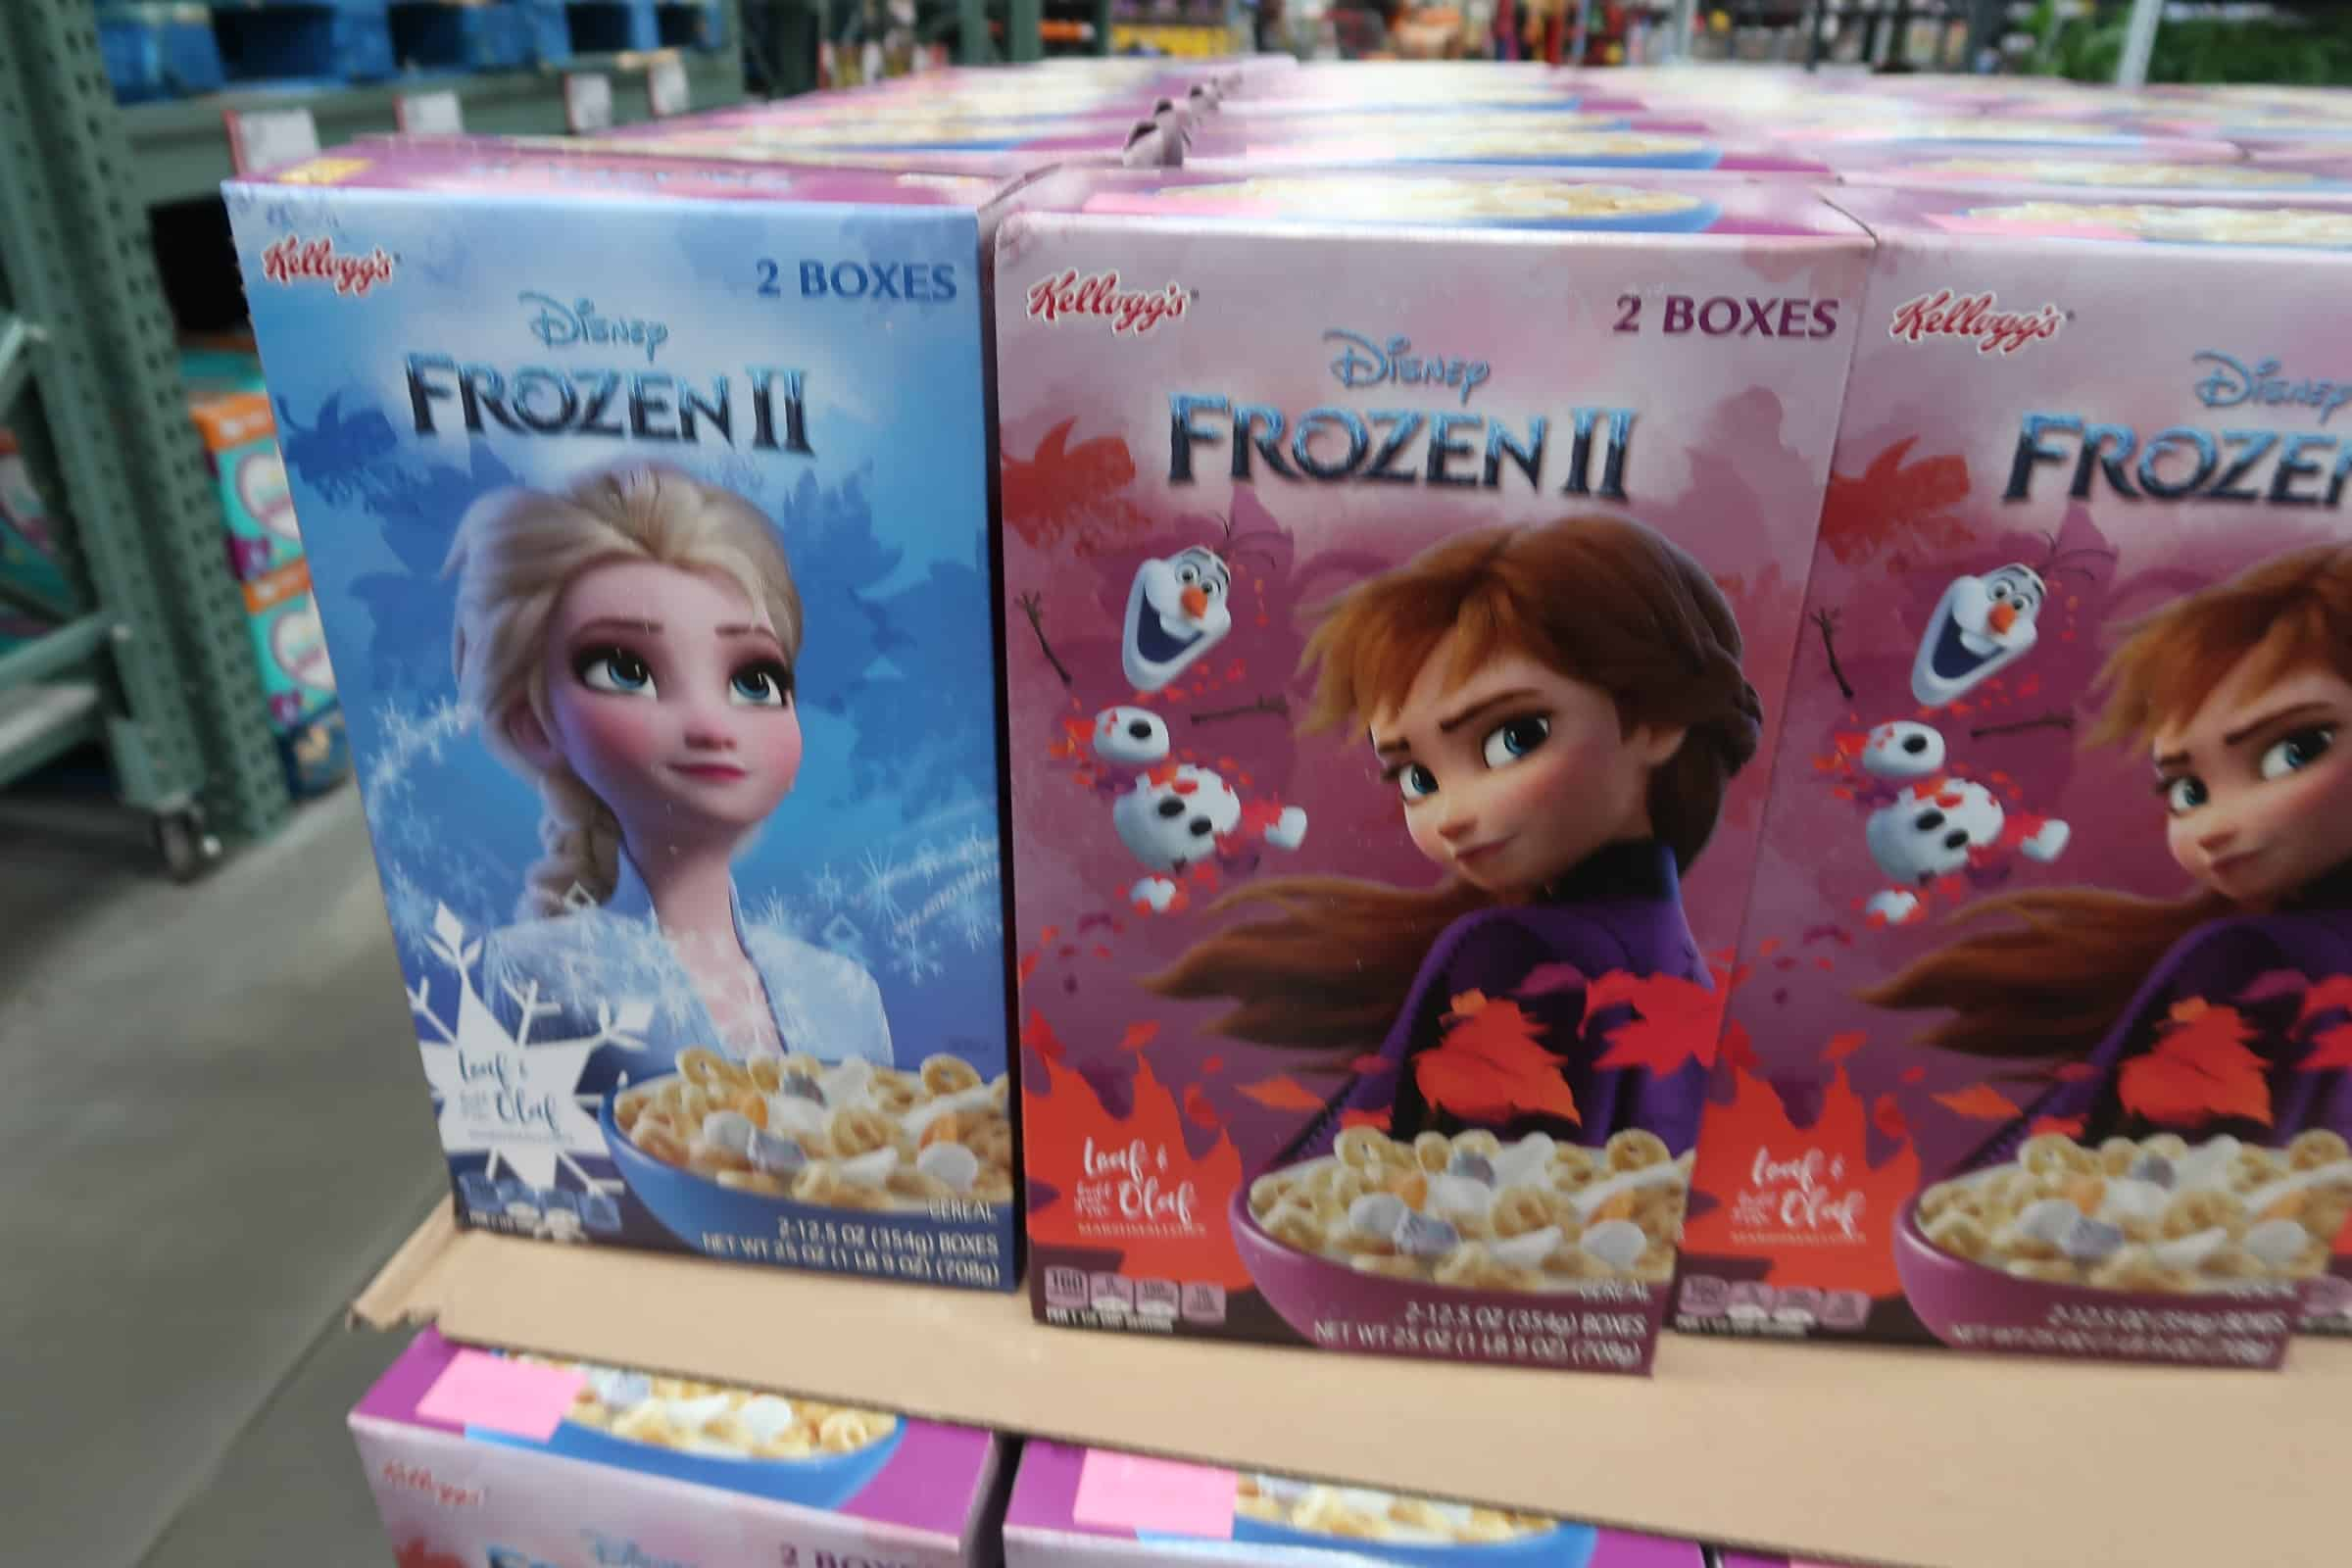 Kellogg's Frozen 2 Cereal Out at BJs